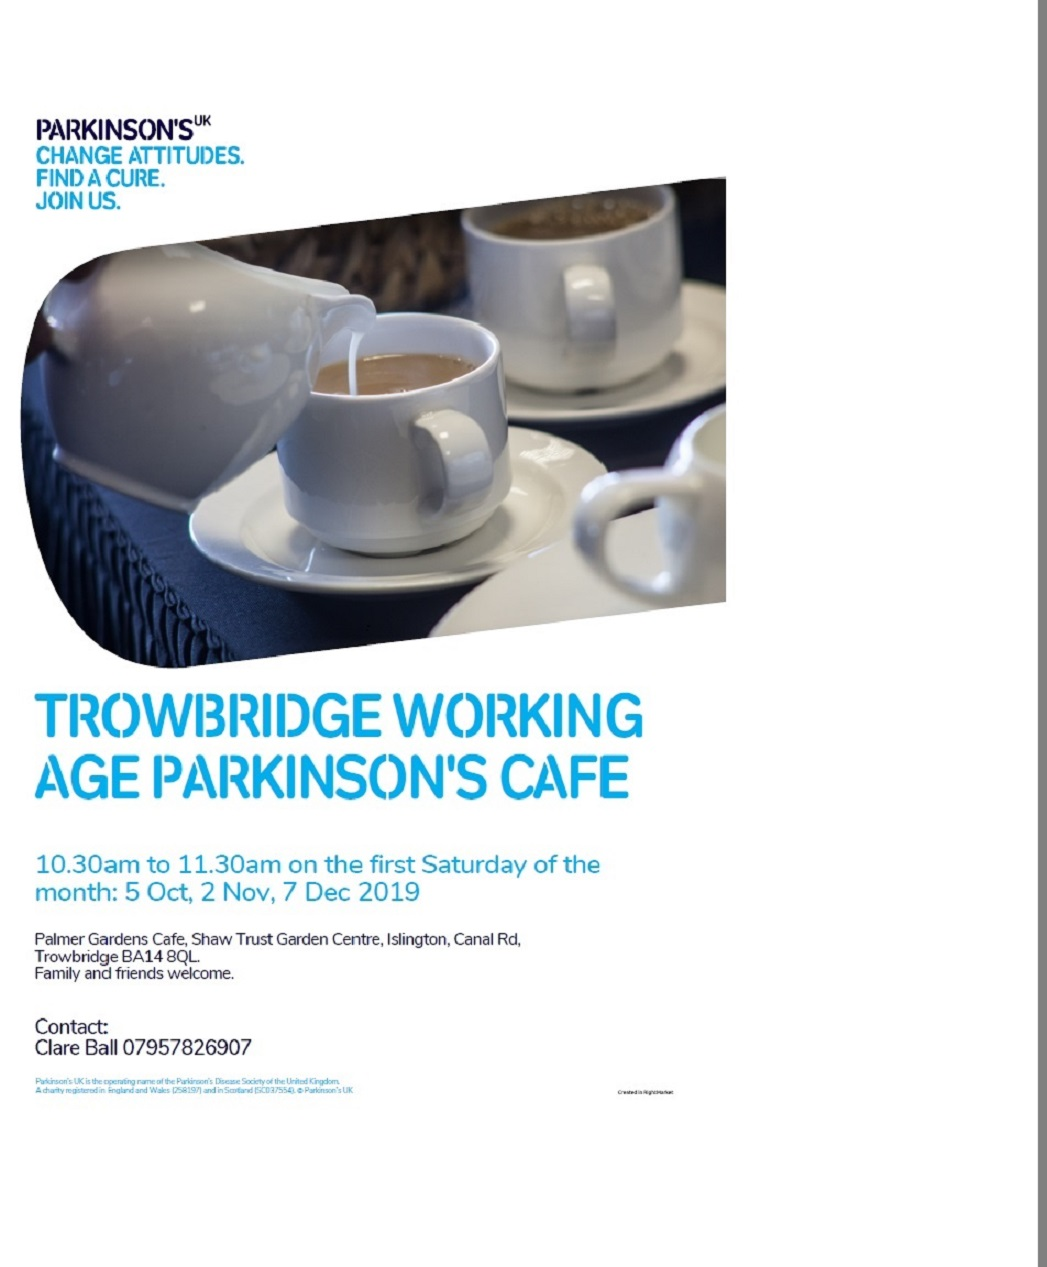 Parkinson's working age cafe